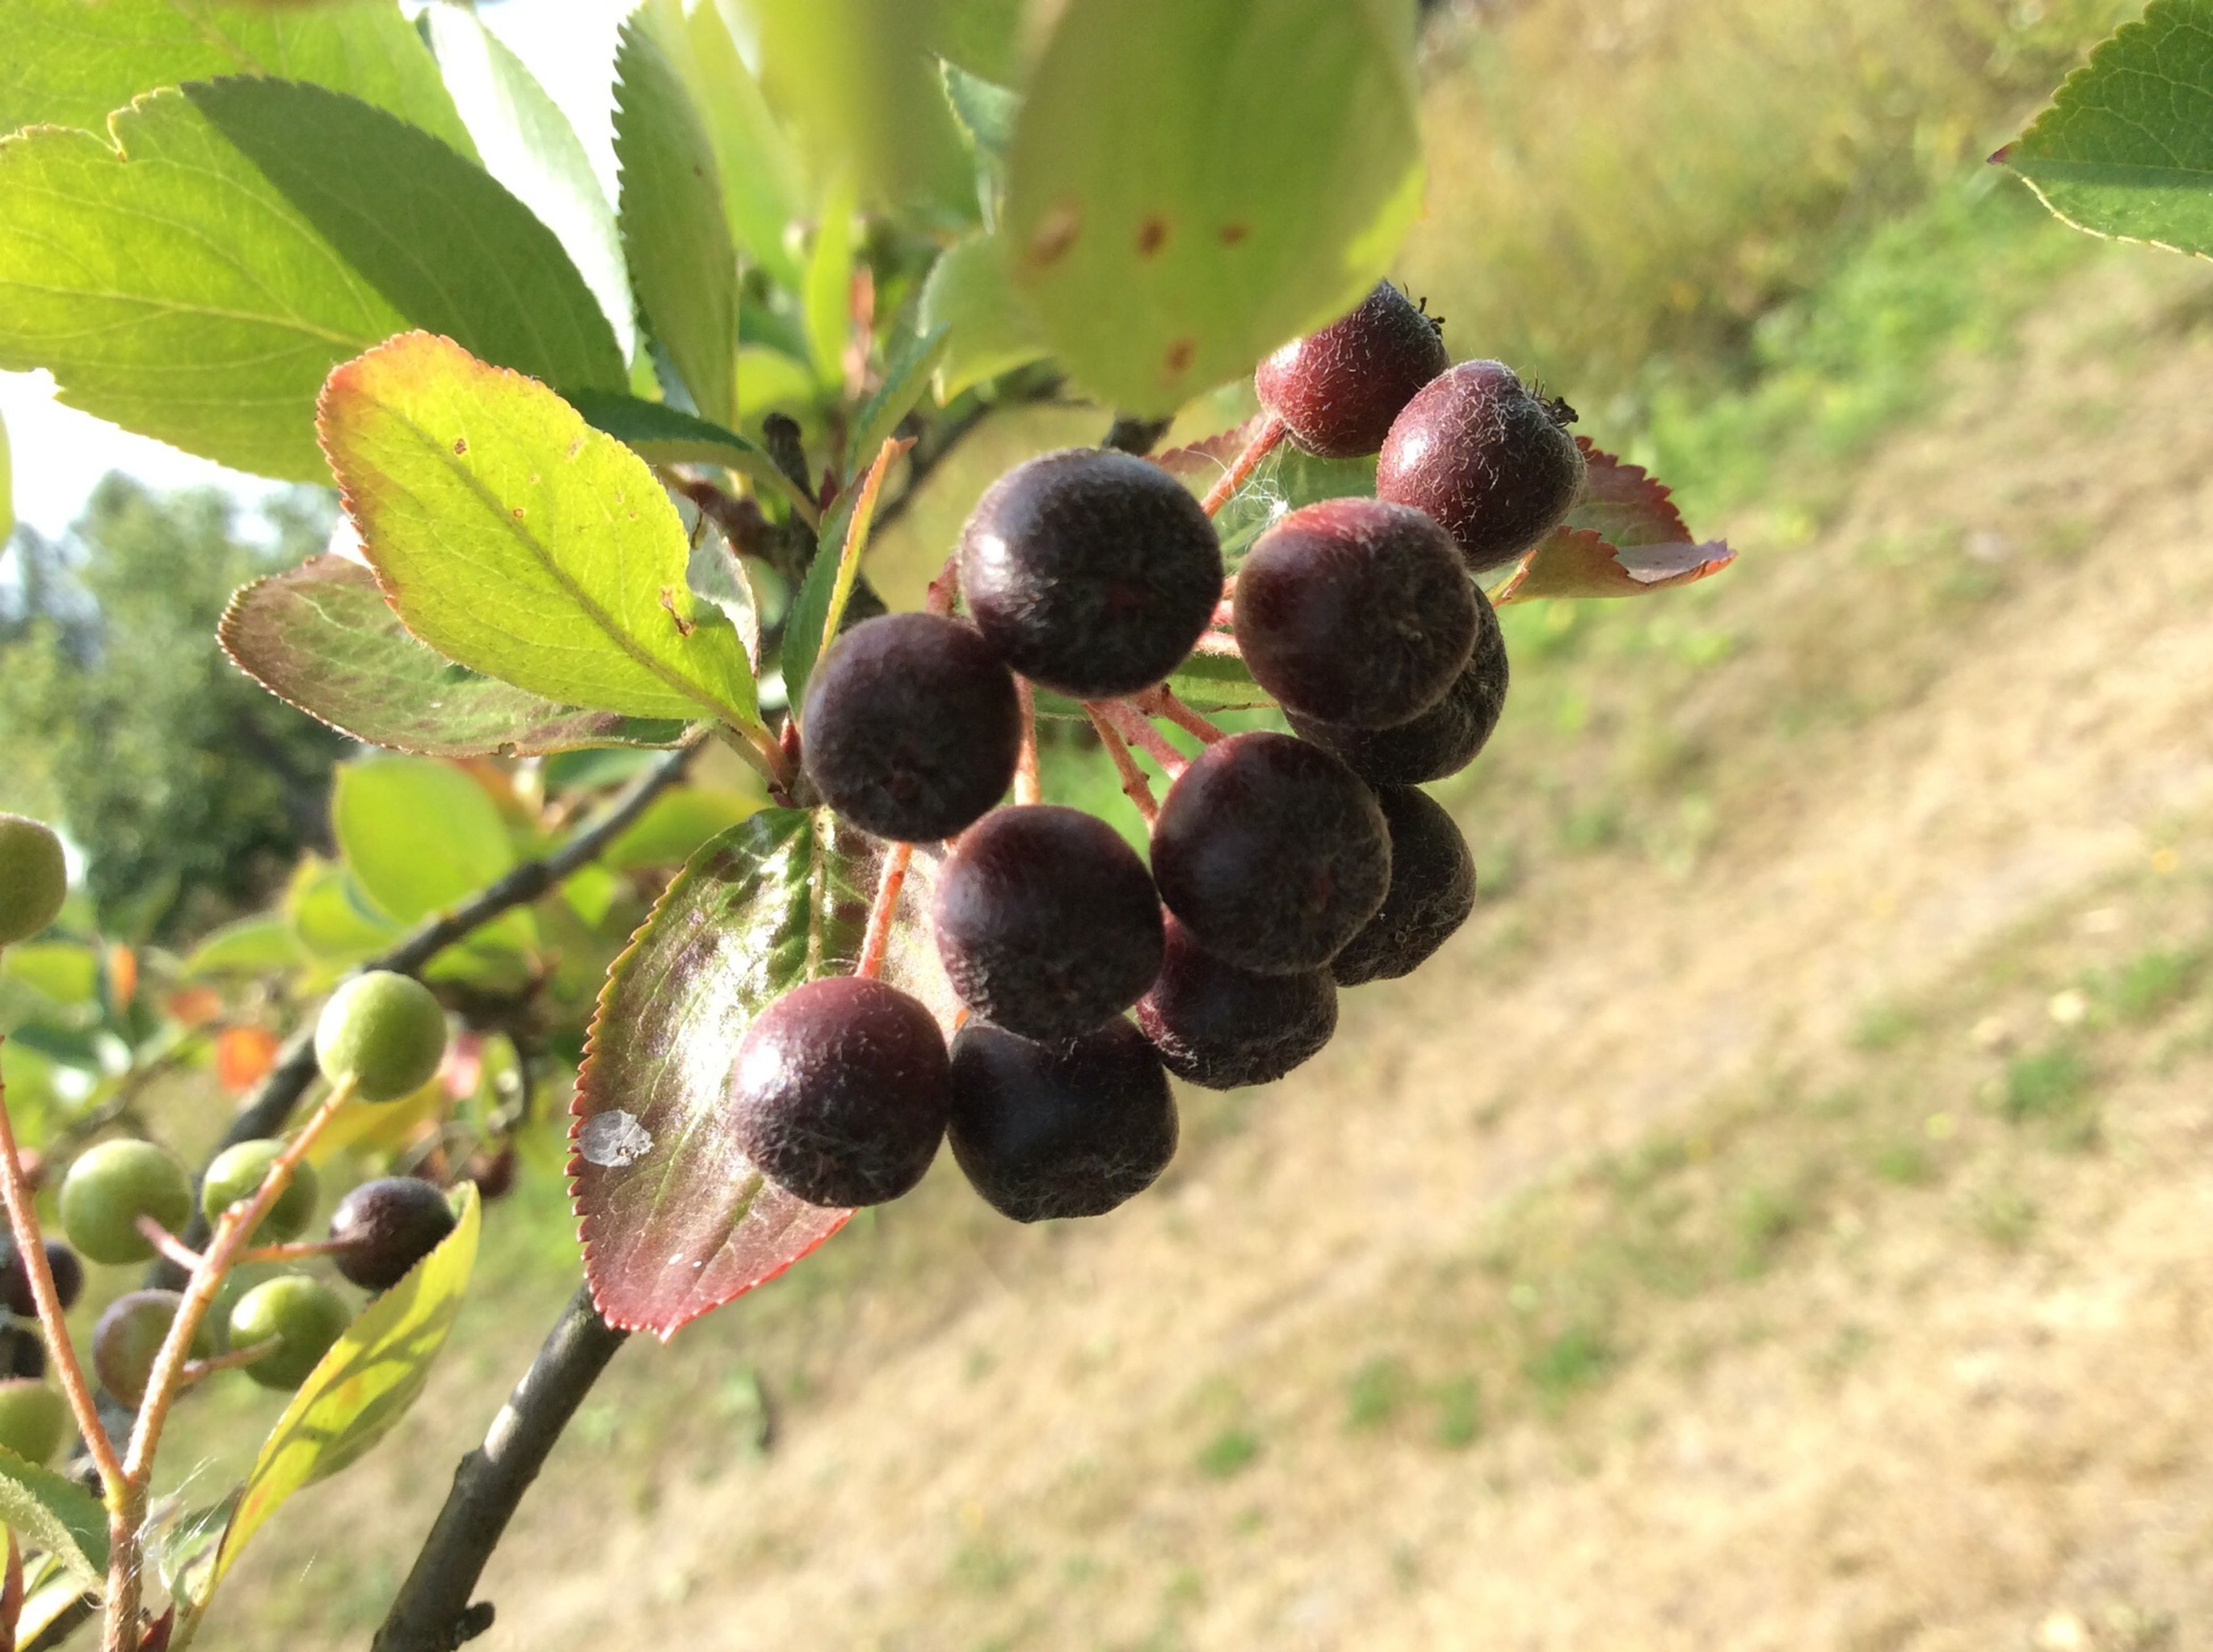 fruit, food and drink, food, healthy eating, freshness, growth, grape, ripe, tree, close-up, vineyard, focus on foreground, berry fruit, bunch, agriculture, leaf, nature, growing, branch, berry